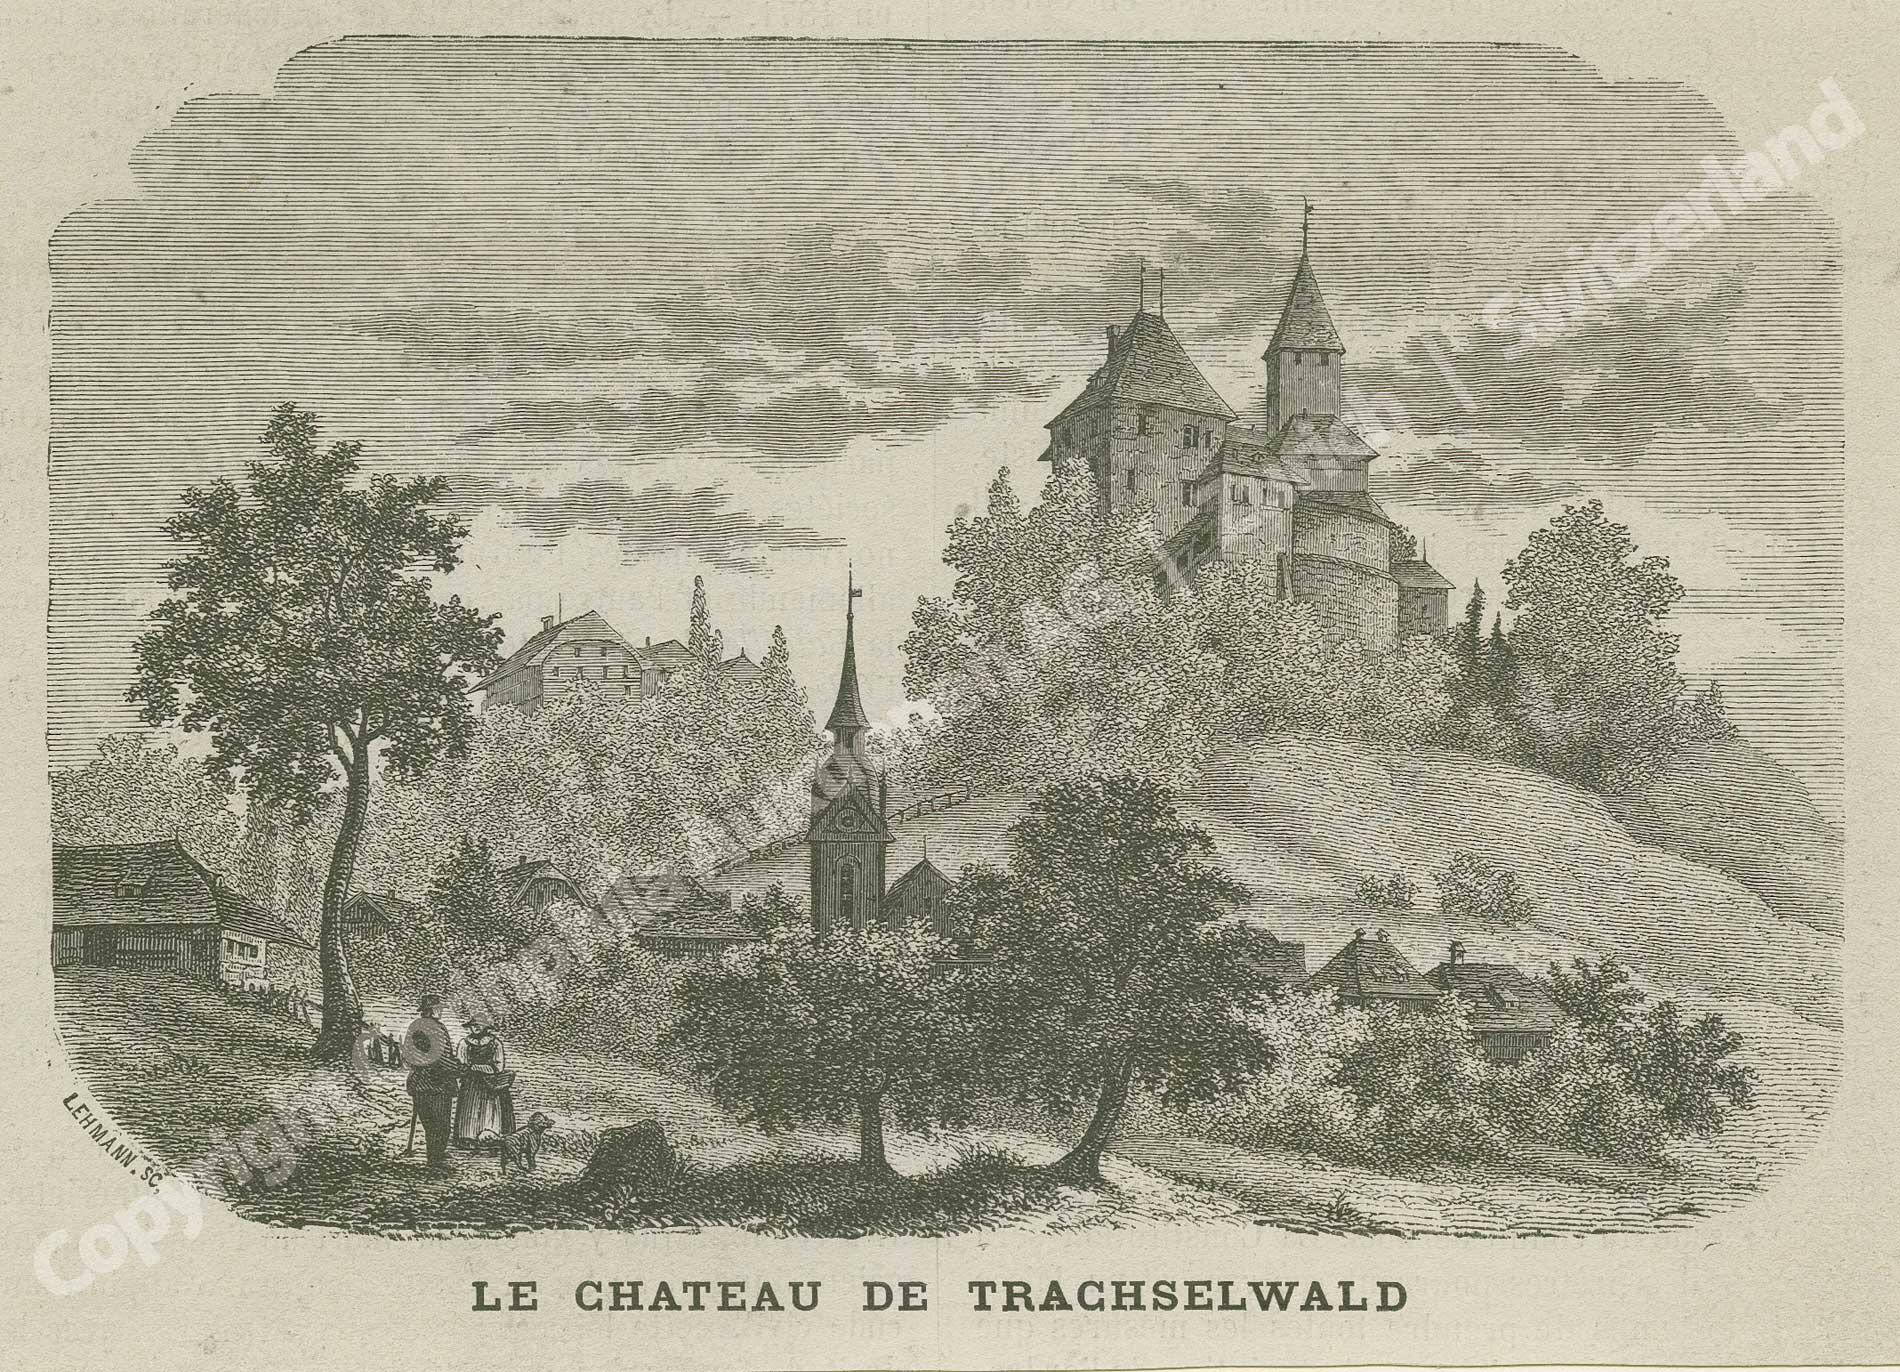 Trachselwald